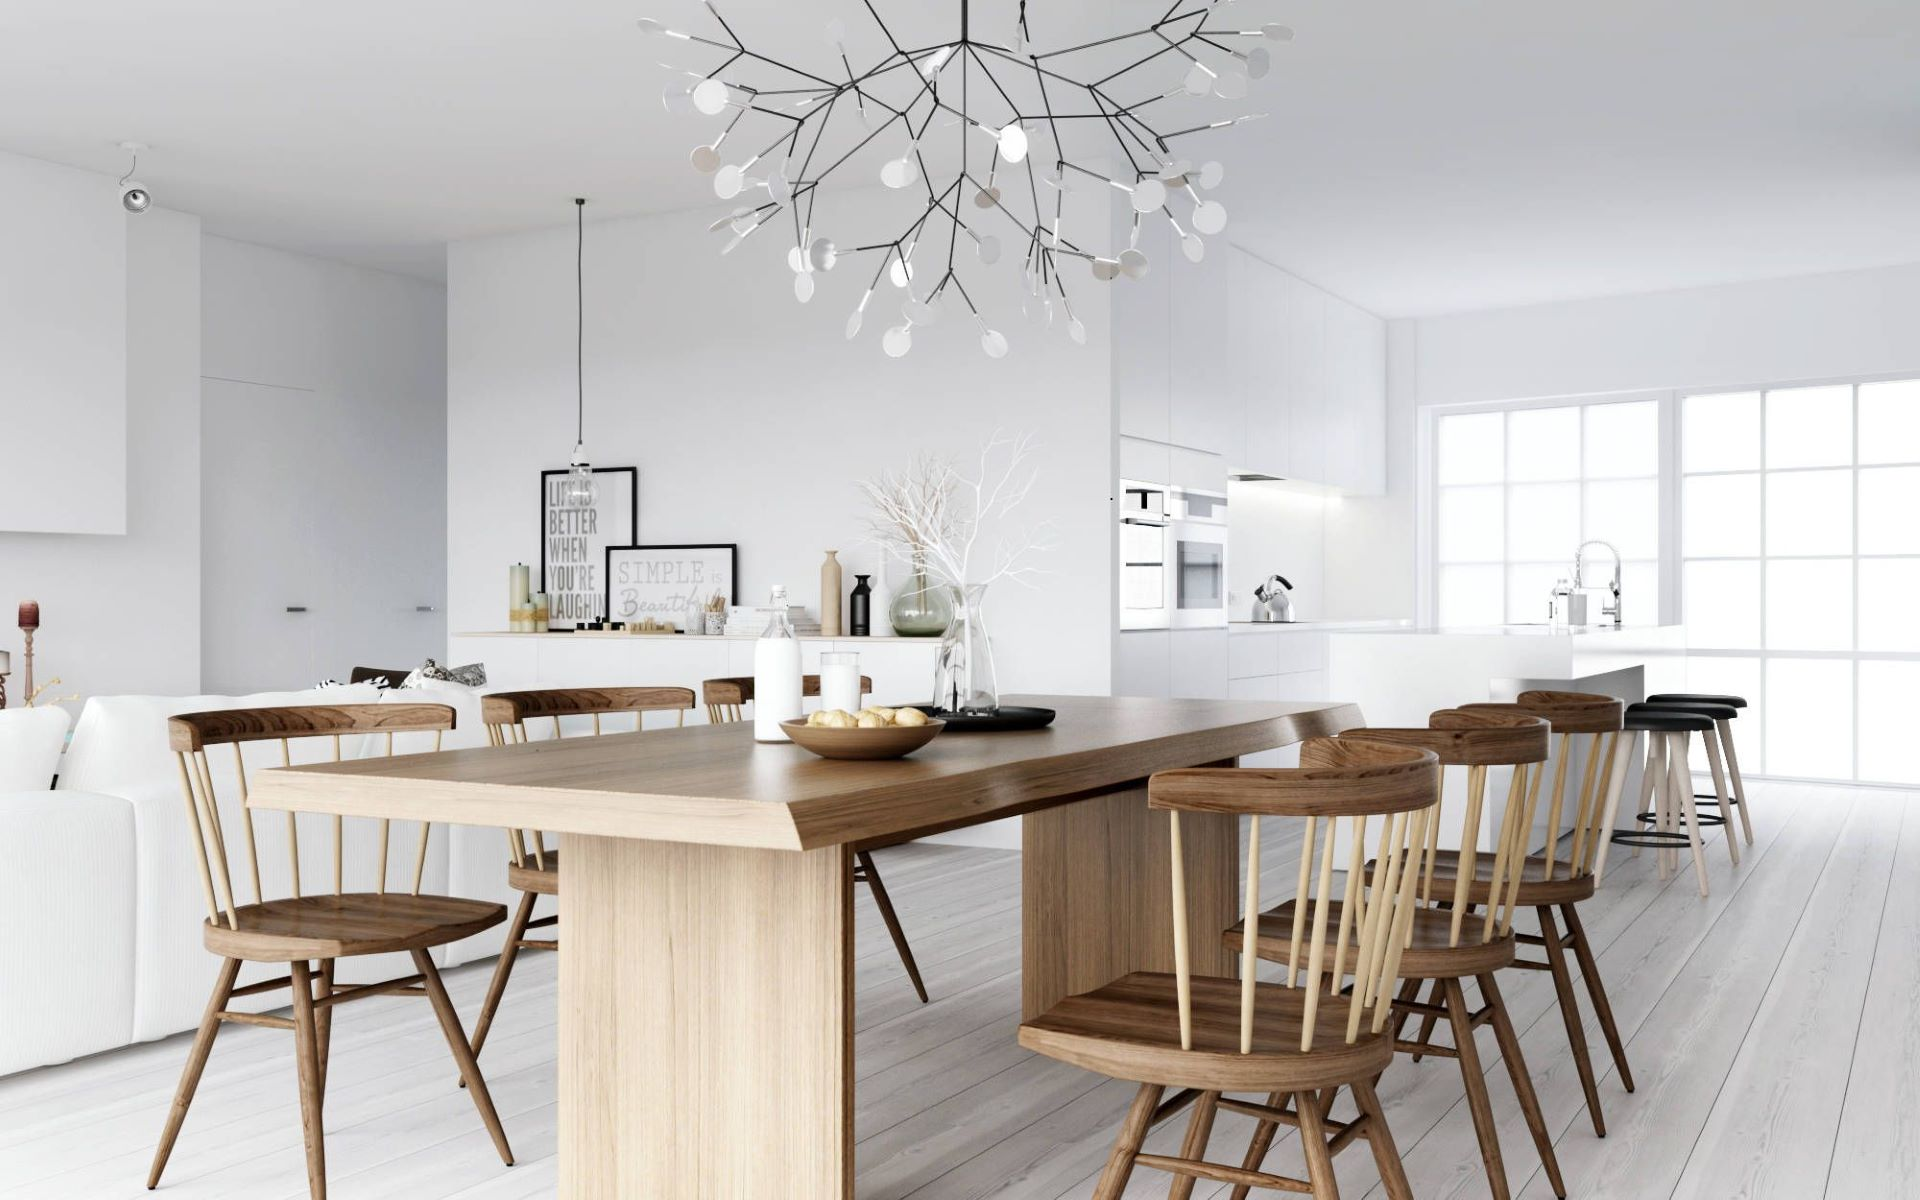 Nordic wooden dining table and chairs contrast with white walls and cabinetry